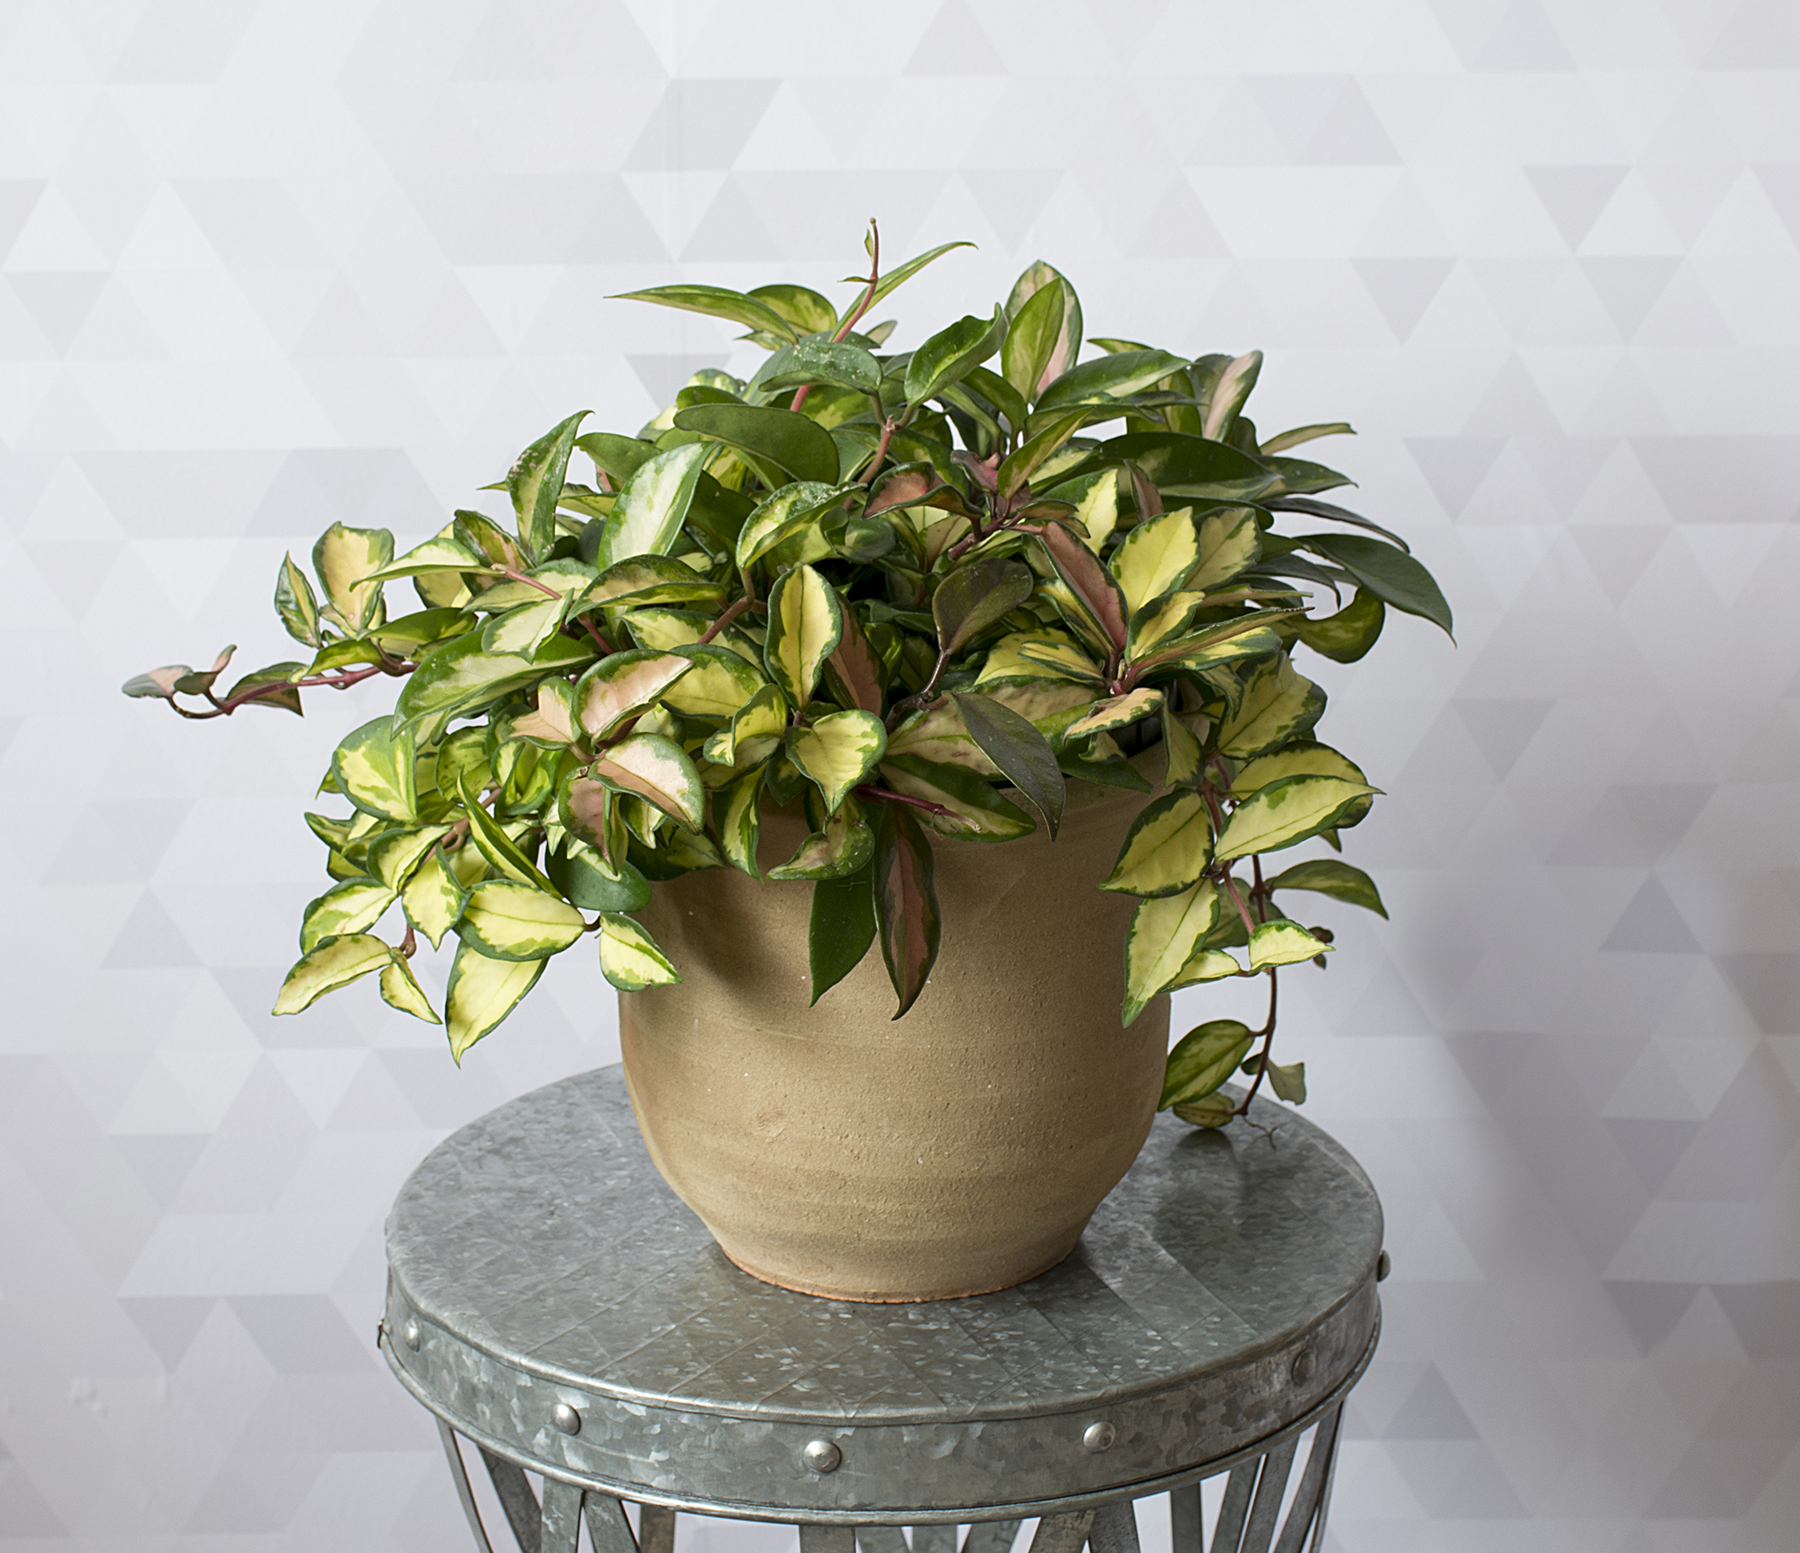 In an Overly-Heated Room: Wax Plant